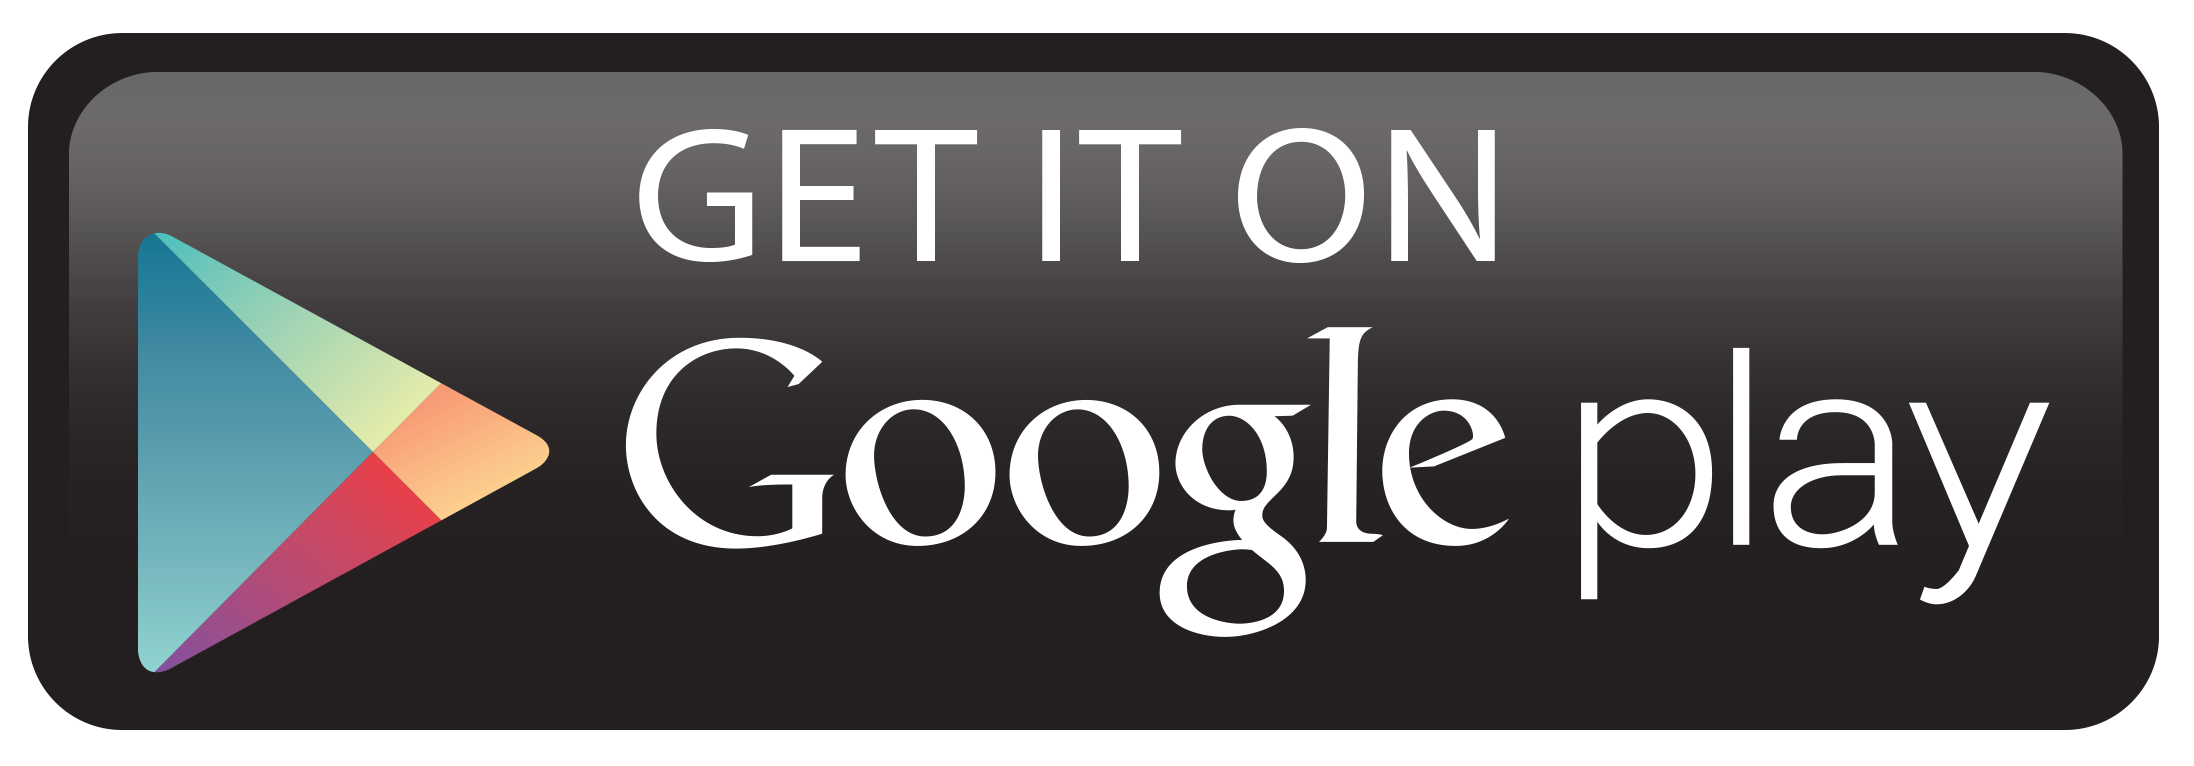 Get It On Google Play Badge PNG-PlusPNG.com-2194 - Get It On Google Play Badge PNG